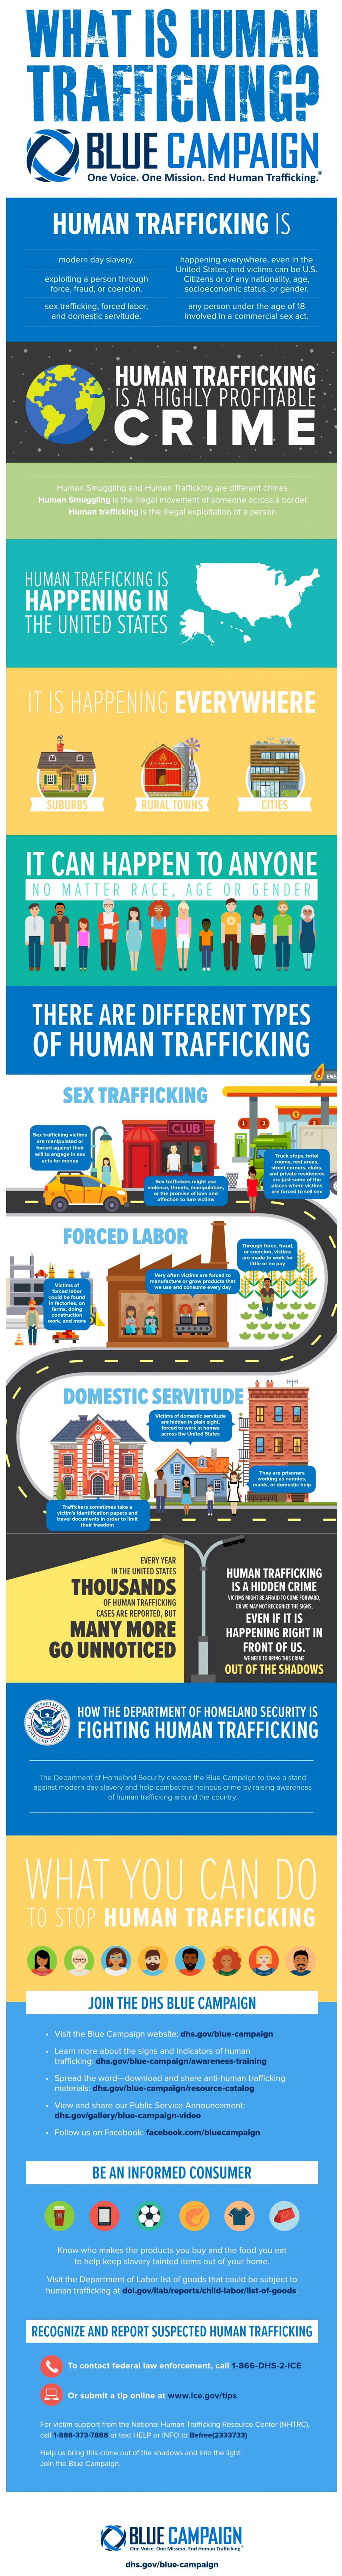 Human Trafficking Profitable Heinous Crime Infographic